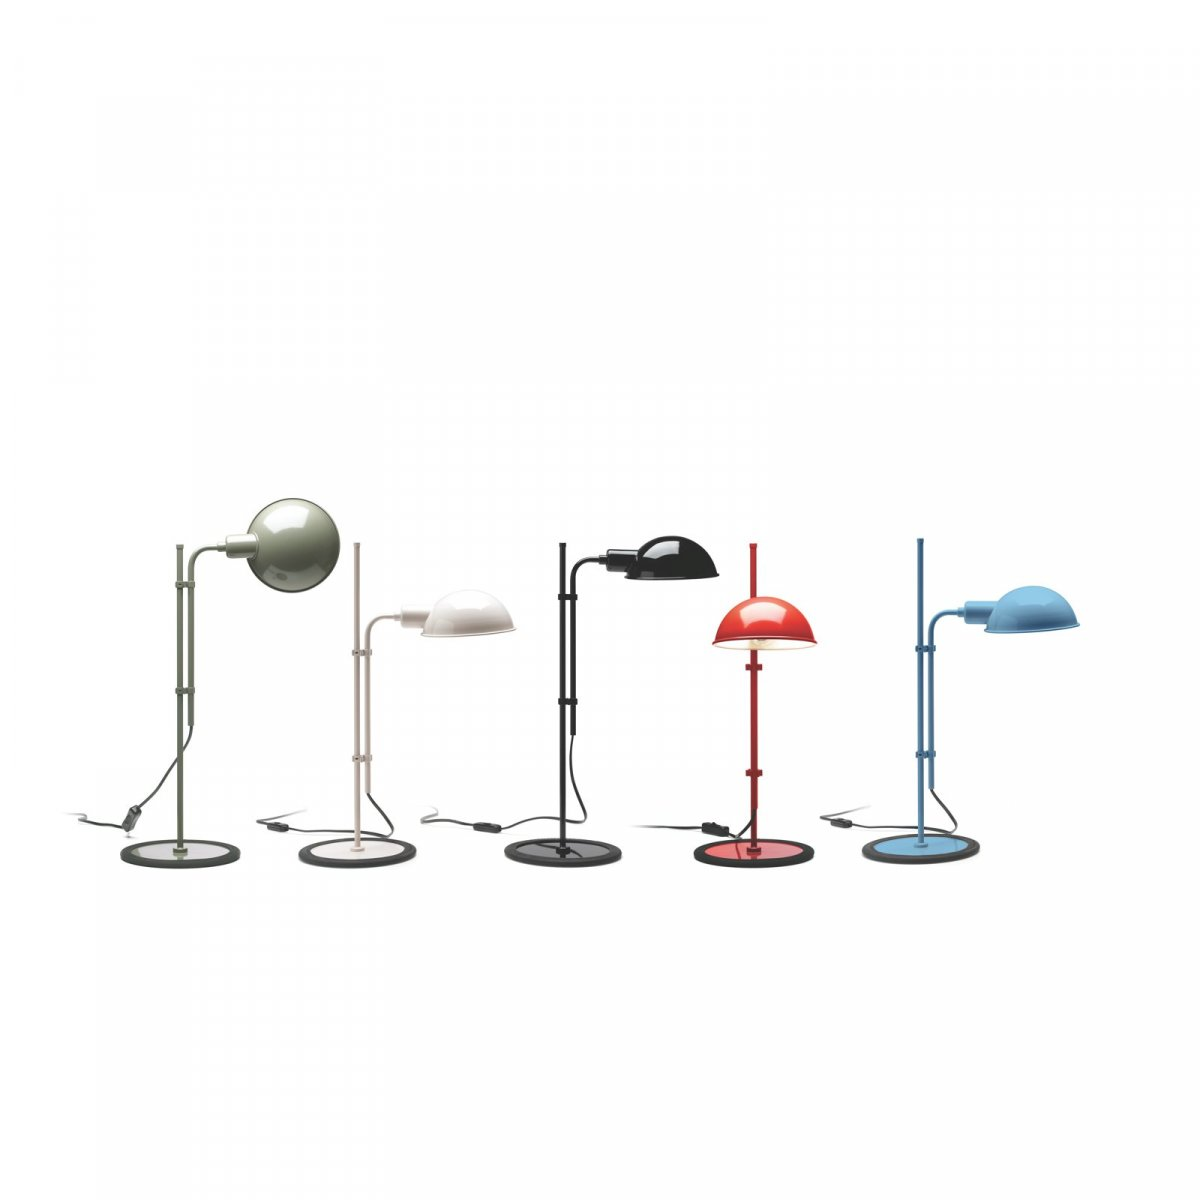 Funiculí S table lamps.